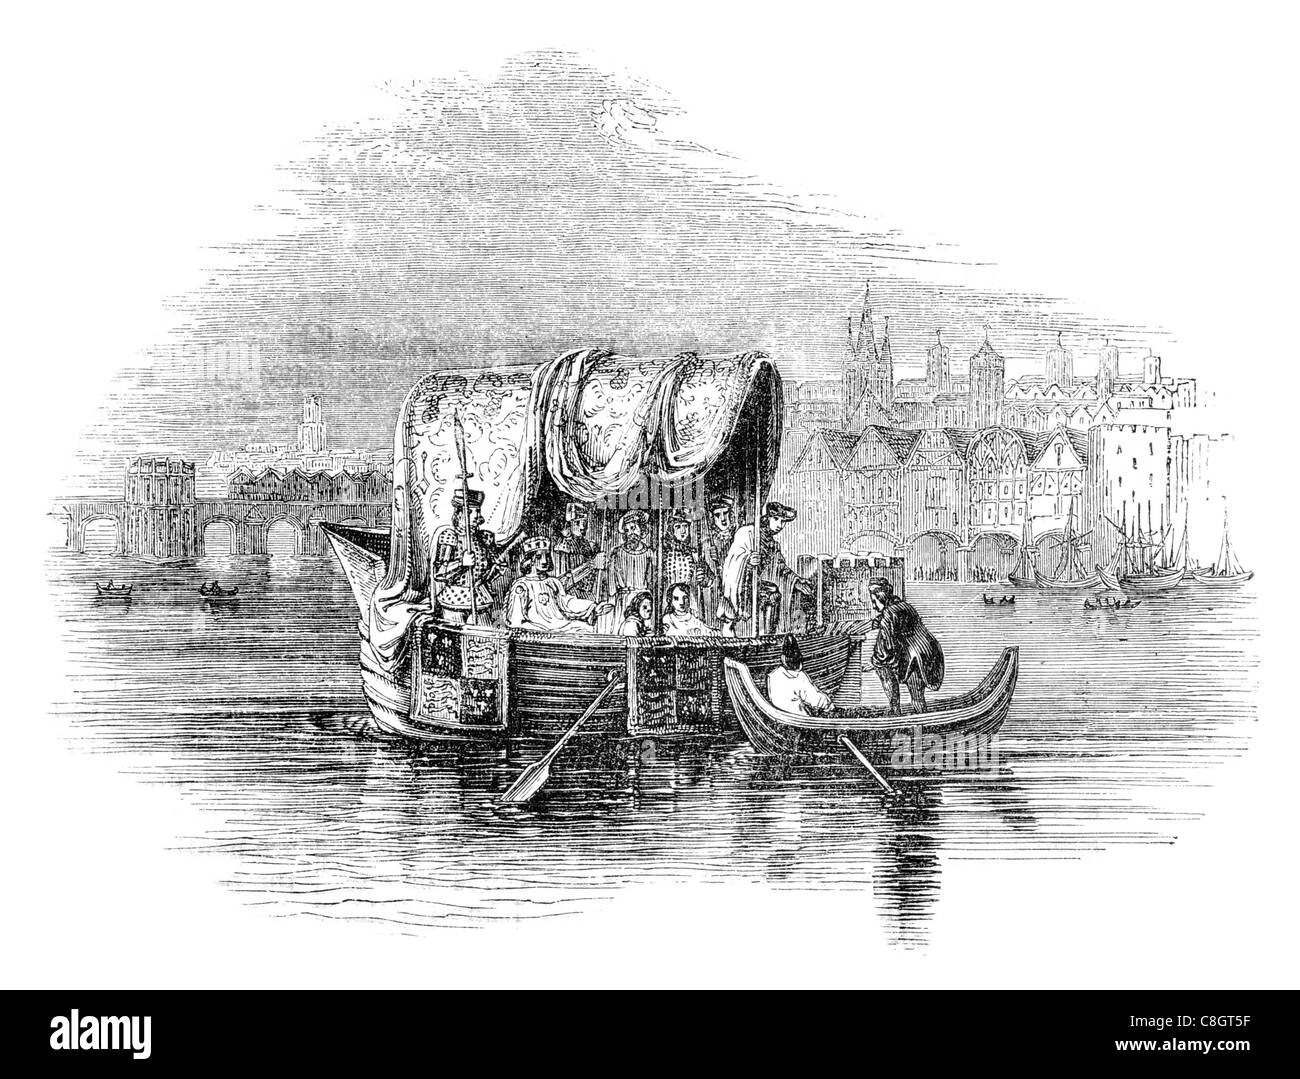 Thames state barge temp Richard II fishing sailor fisherman sail sailing sailor ship ships shipping marine cargo - Stock Image